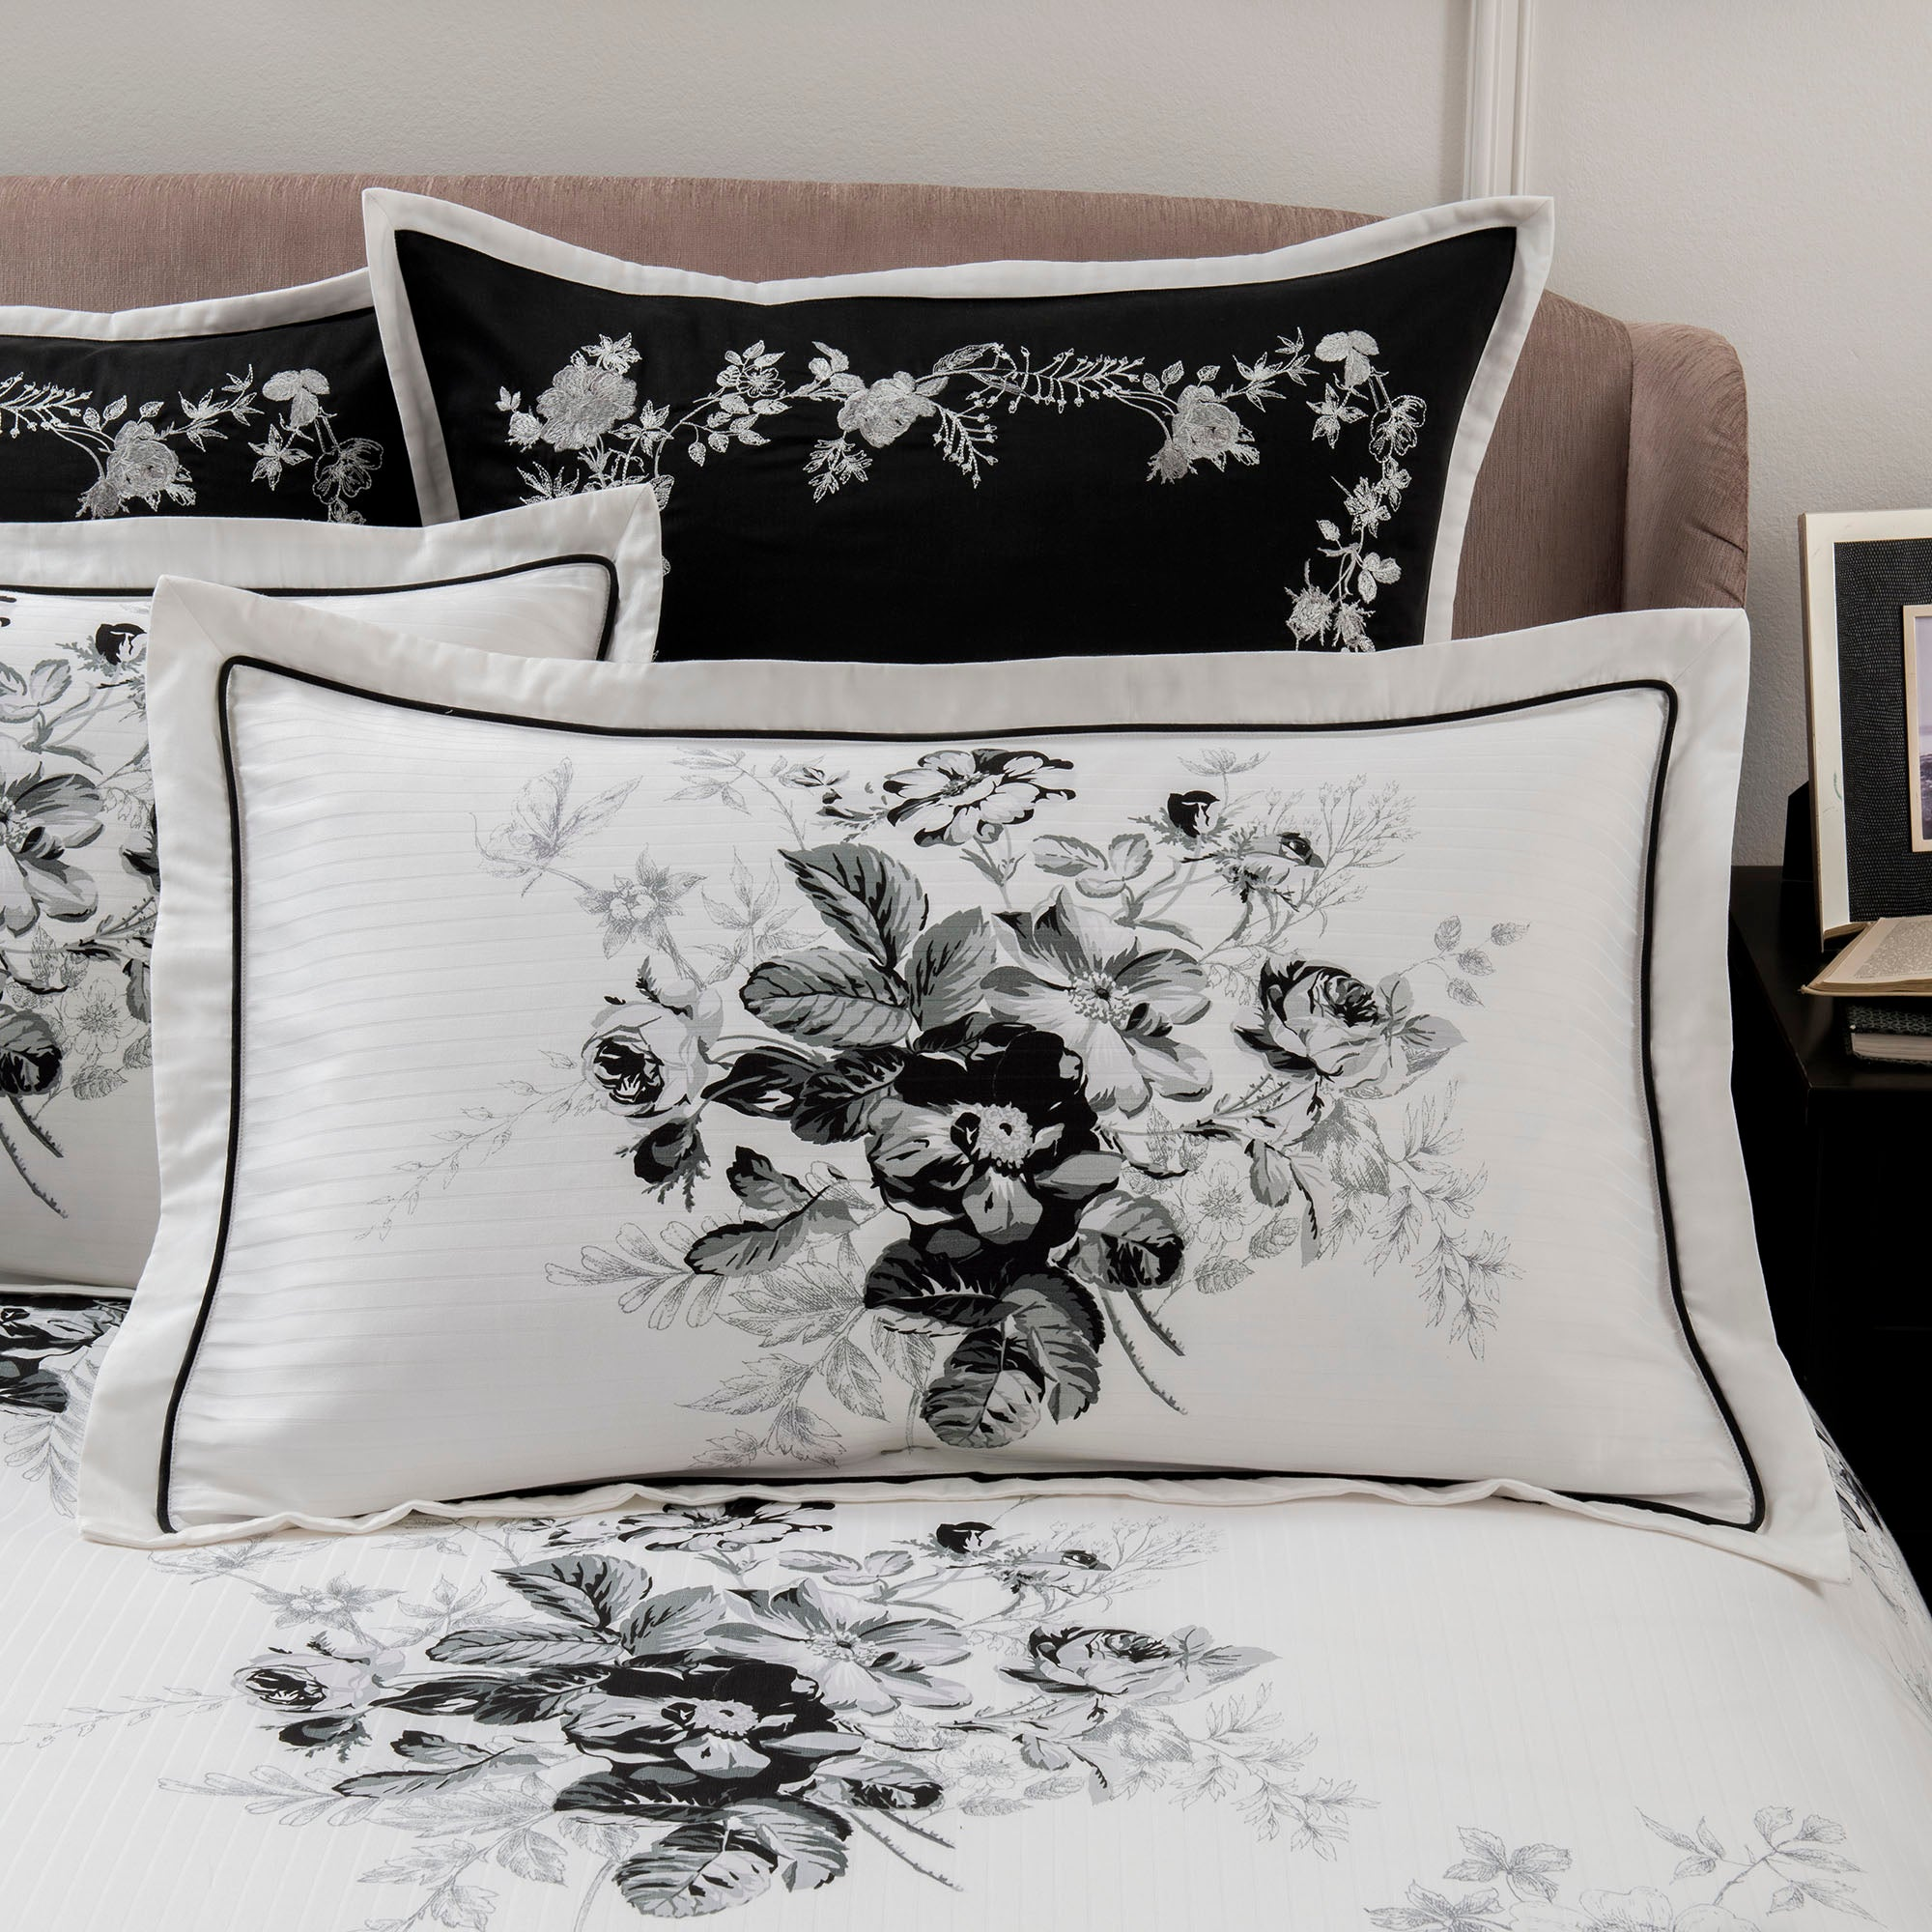 Dorma Black and White Gardenia Collection Oxford Pillowcase